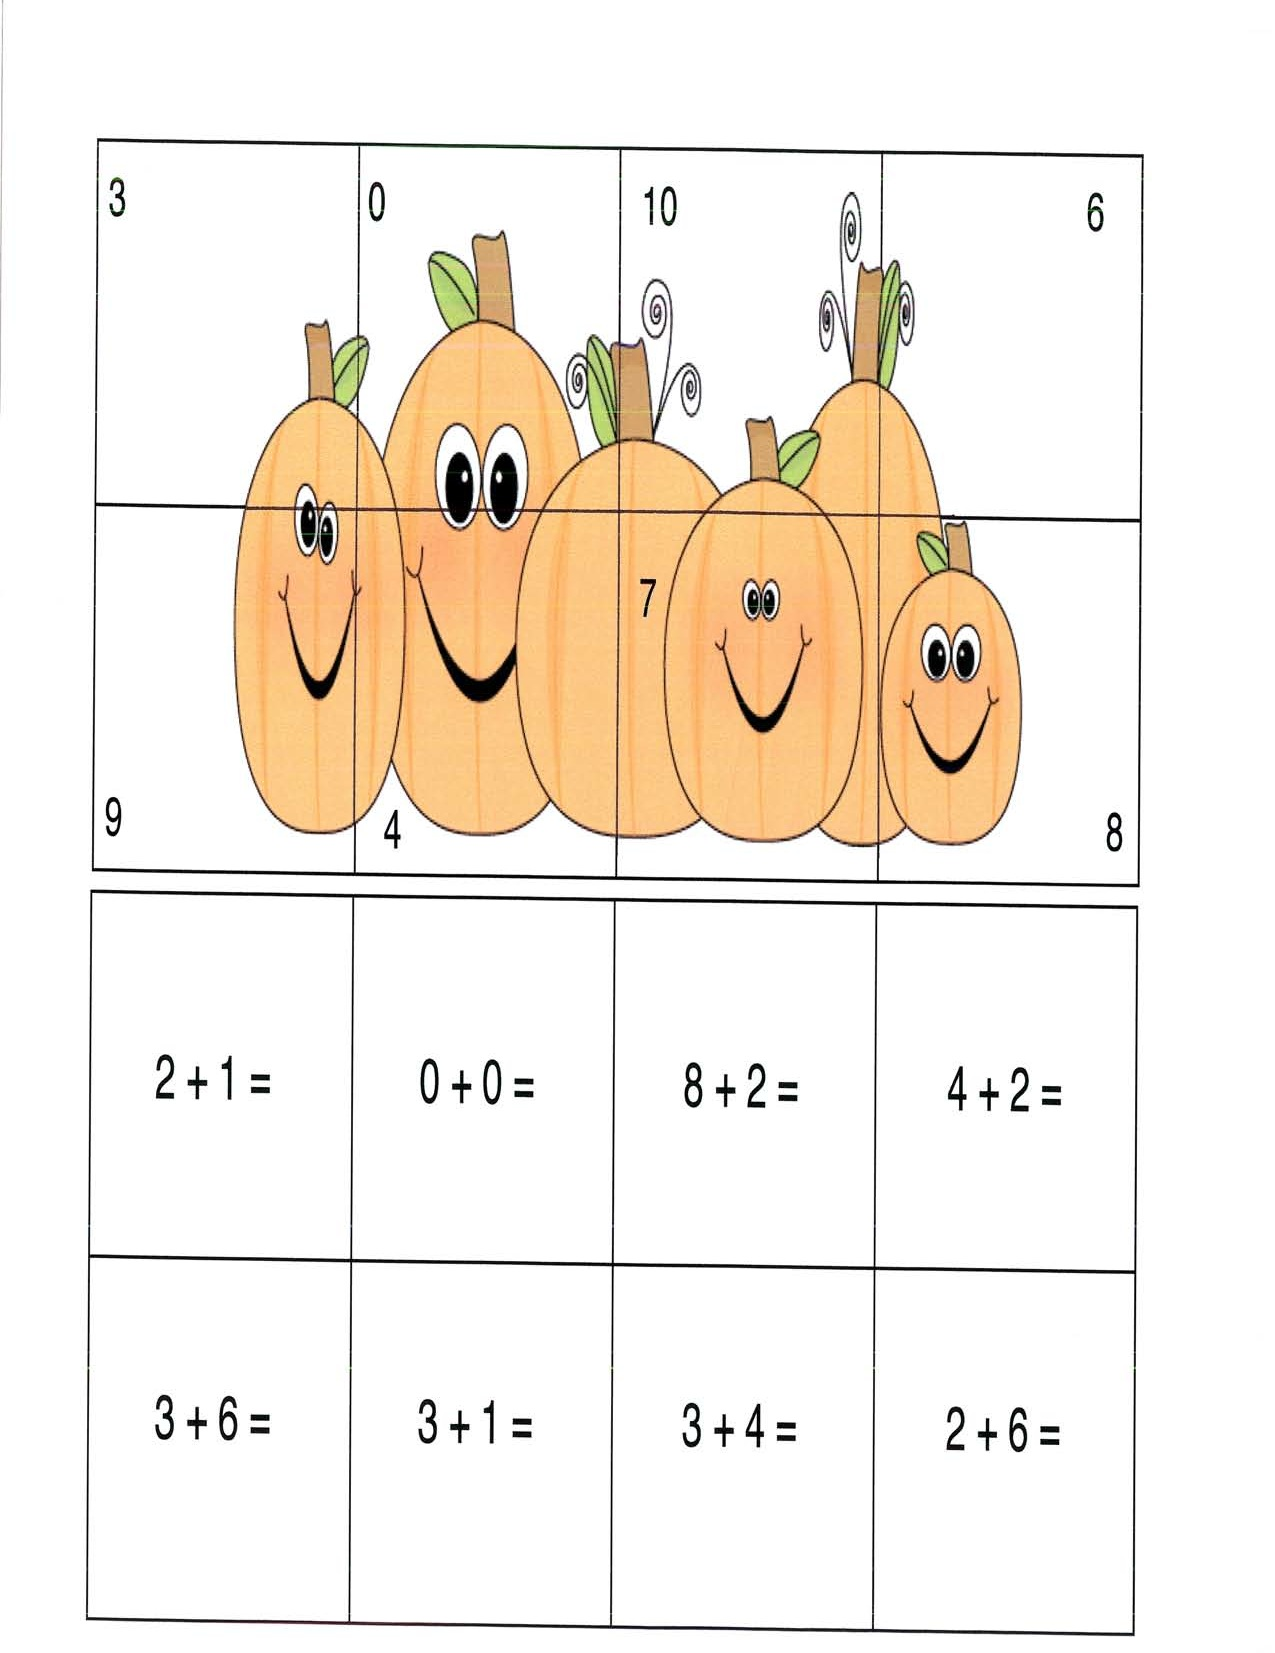 common core math lessons for kindergarten, common core math lessons for first grade, common core lessons for kindergarten, common core lessons for first grade, math center activities, math games, math puzzles, puzzle activities, math lessons for kindergarten, math lessons for first grade, addition activiteis, addition games, subtraction lessons, addition lessons, subtraction games, addition puzzles, subtraction puzzles, fall games, fall math games,